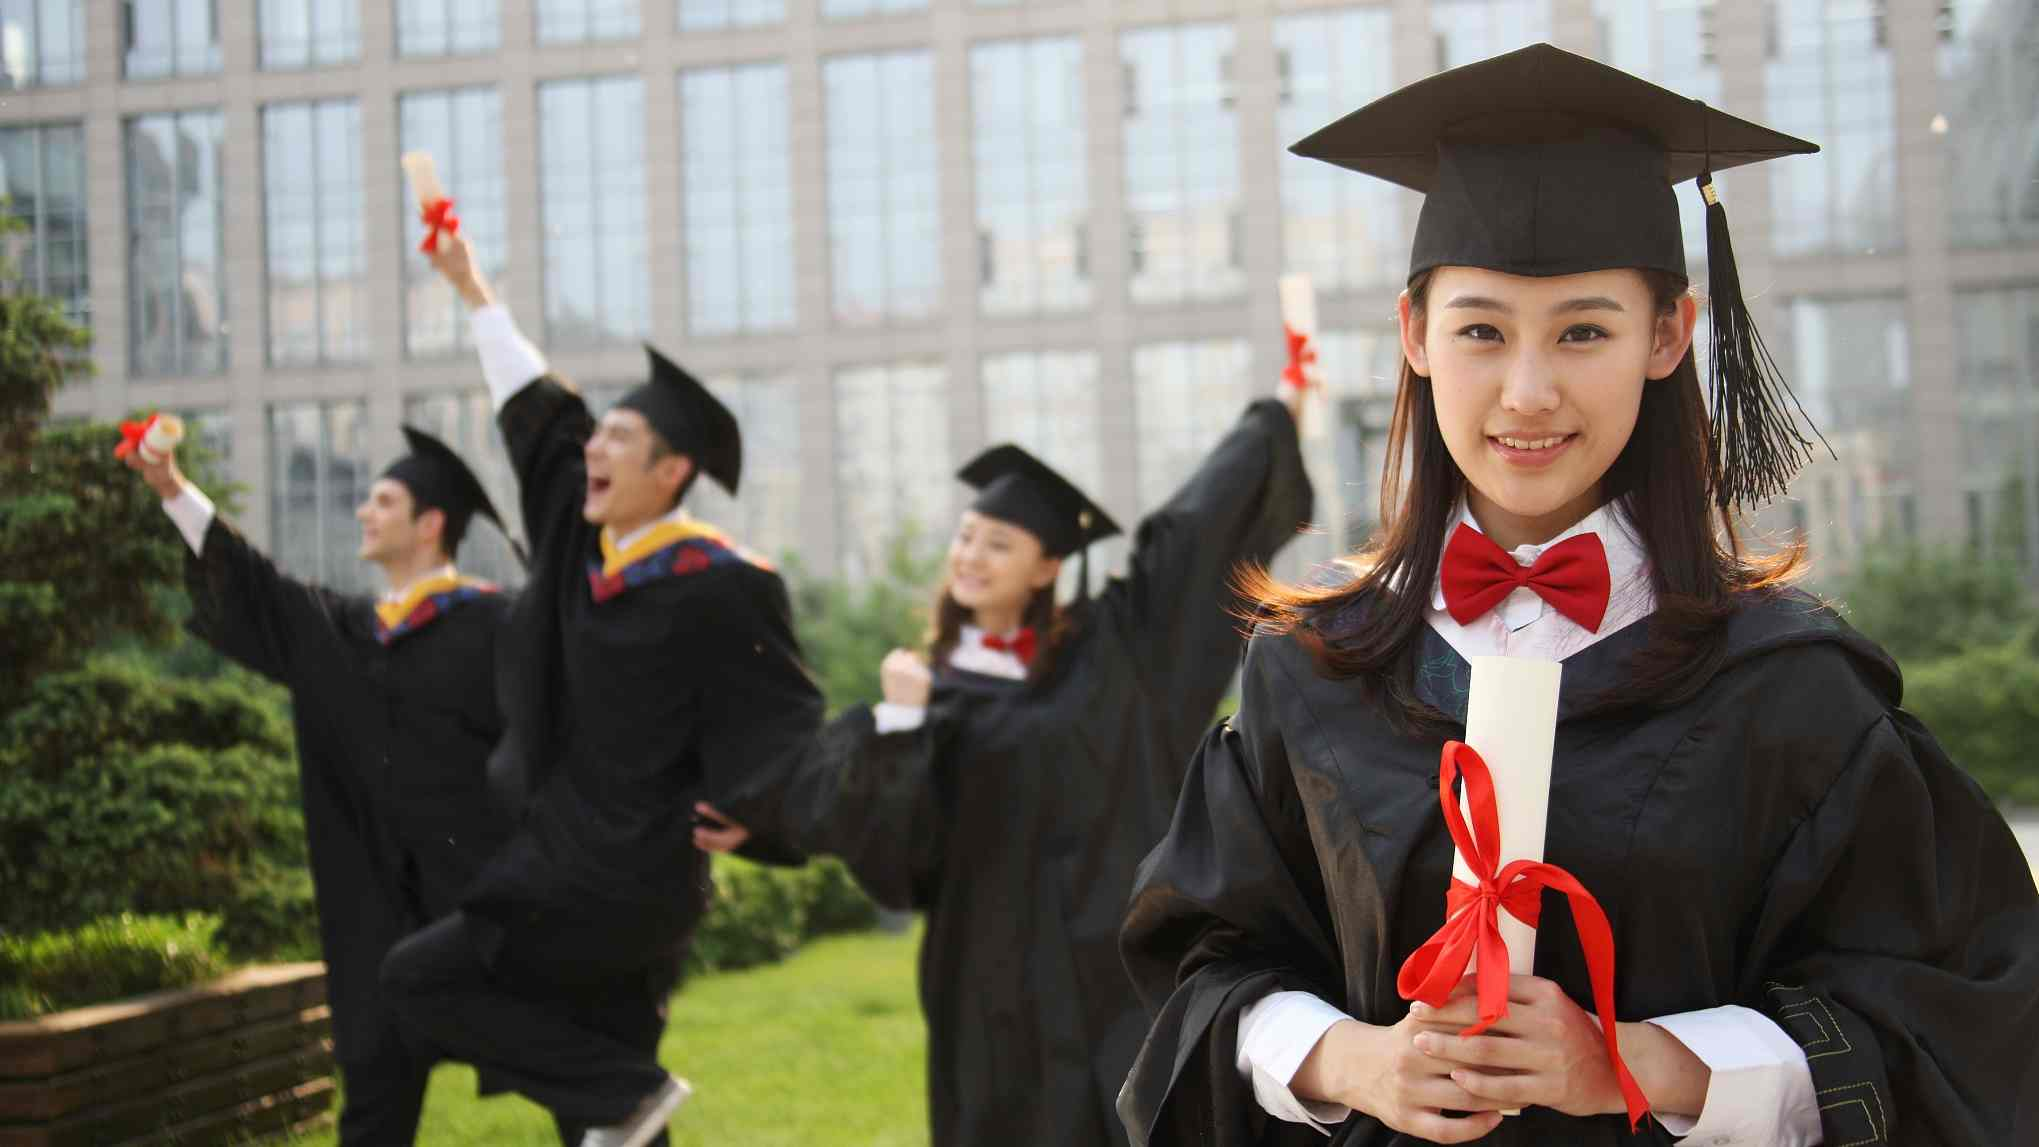 hong-kong-billionaire-cover-tuition-fees-chinese-undegrads